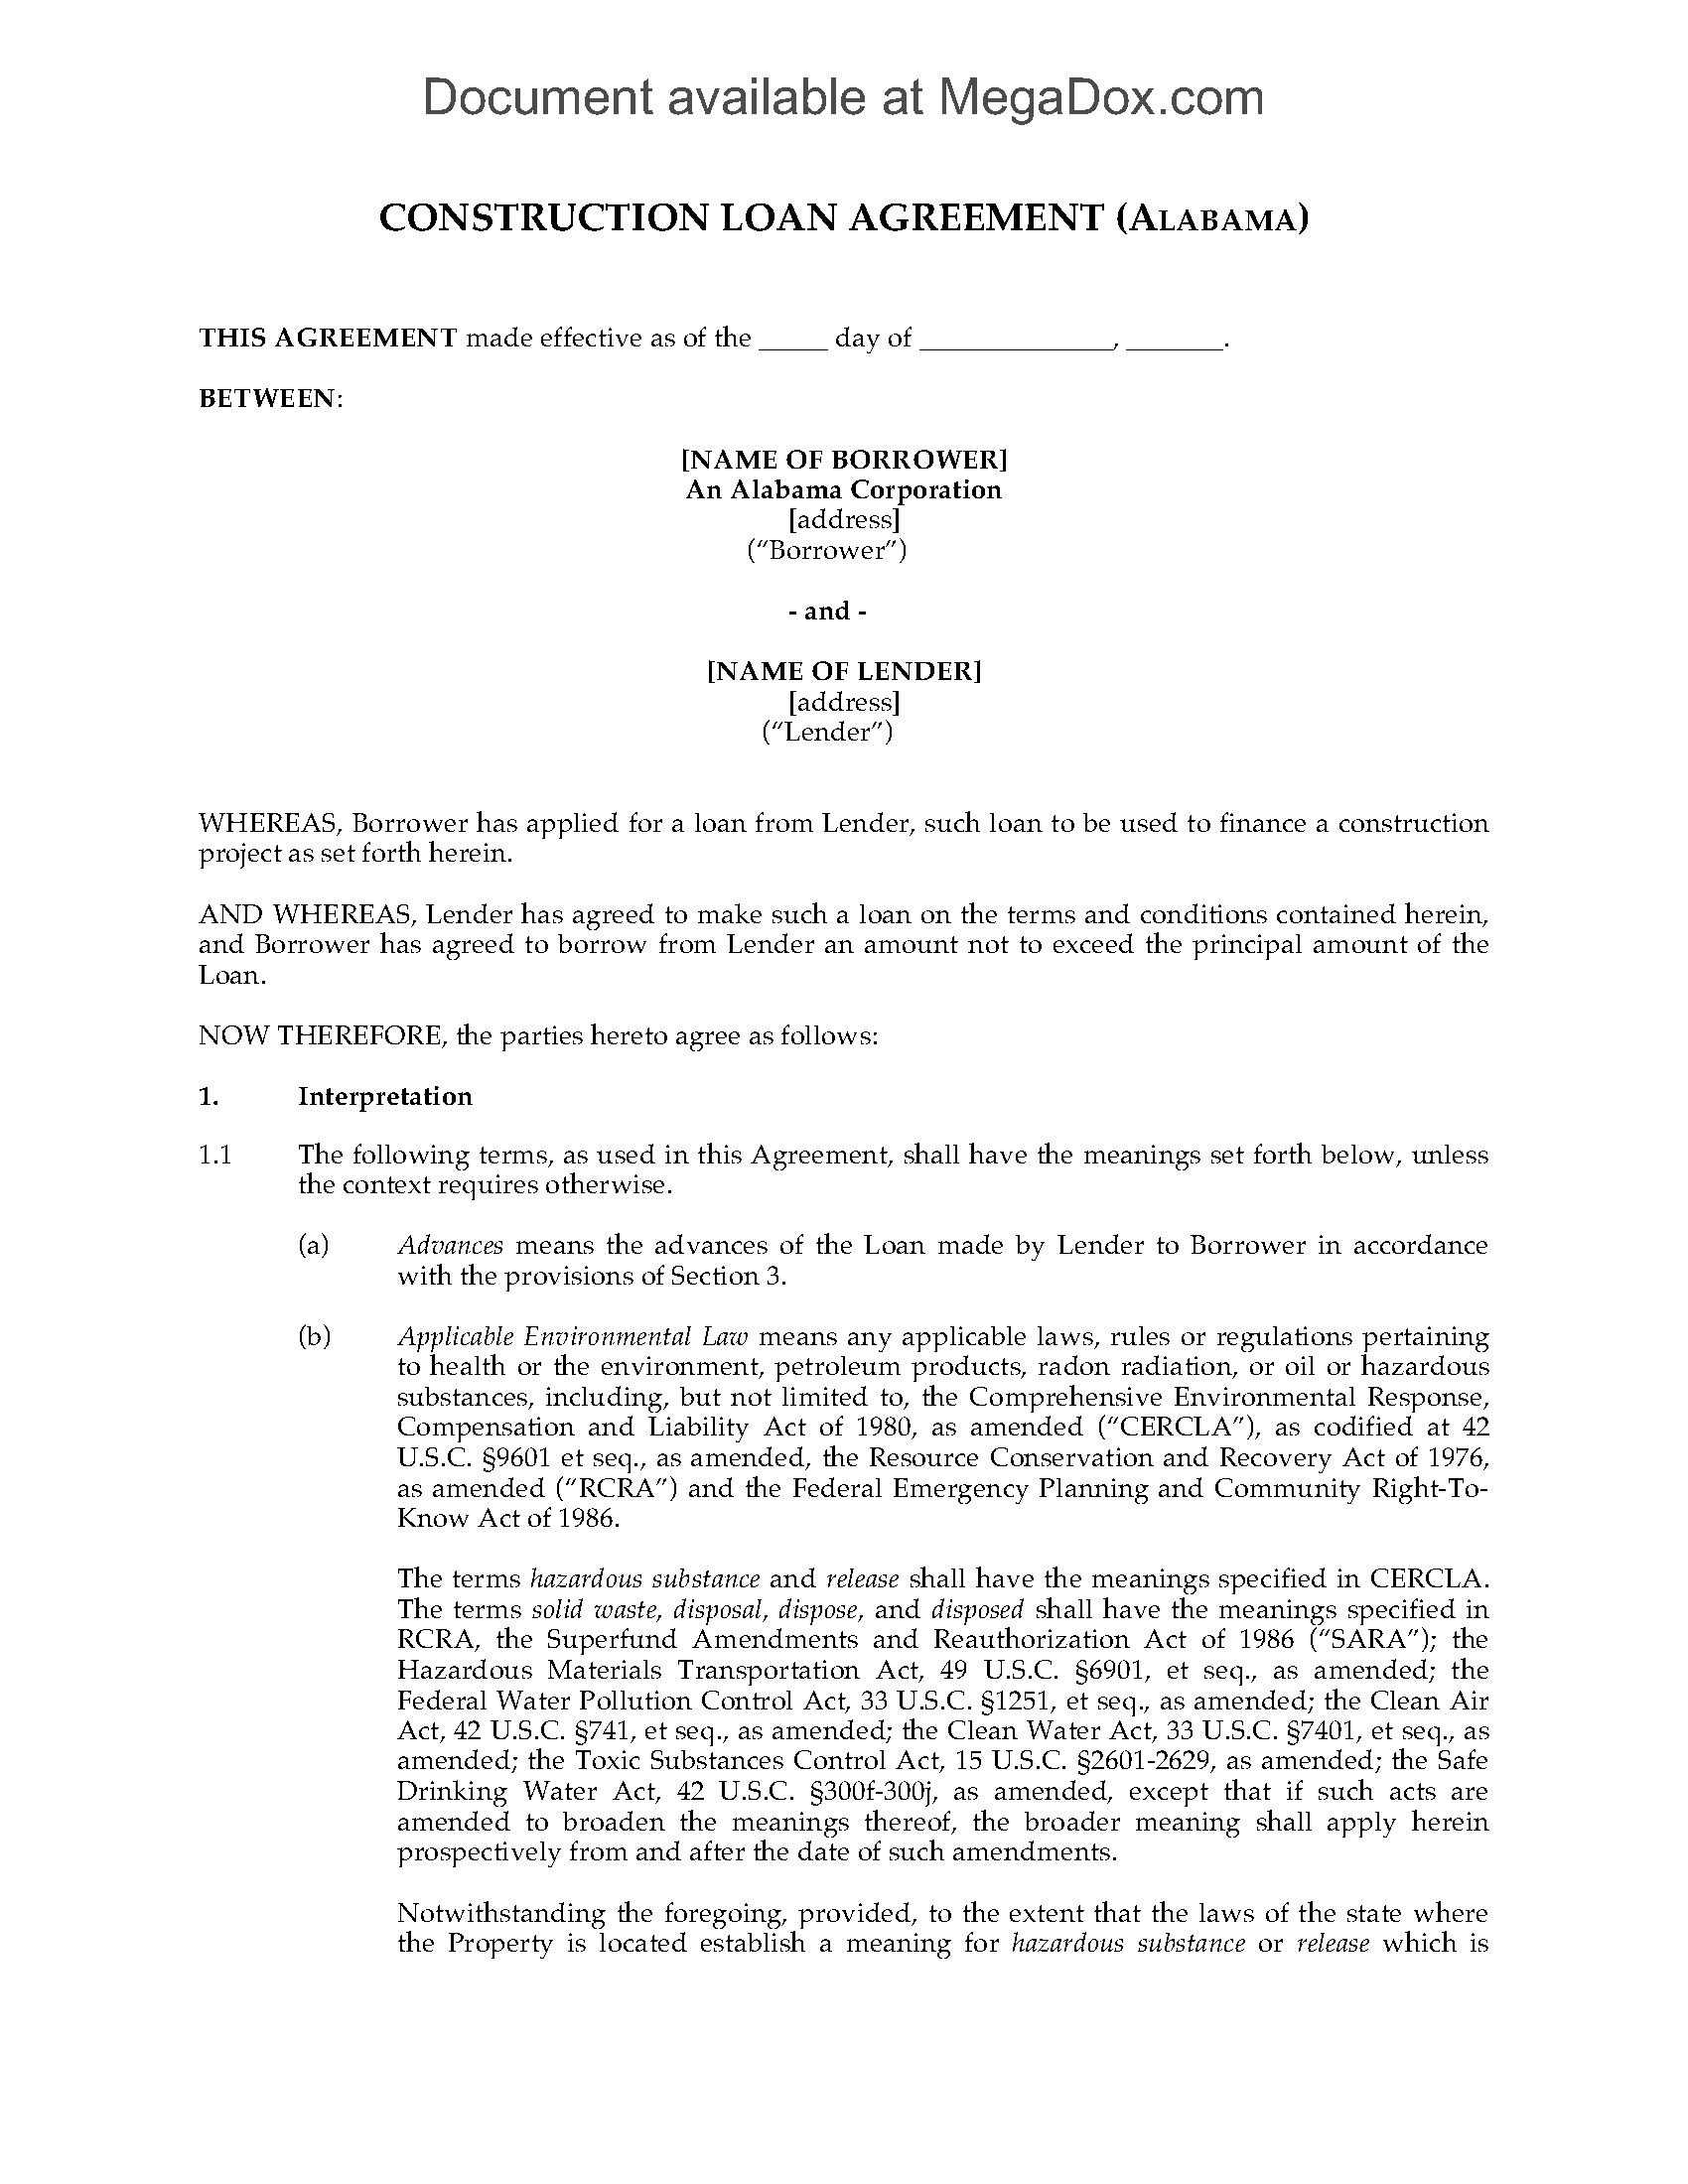 Alabama Construction Loan Agreement  Legal Forms And Business Intended For Construction Loan Agreement Template